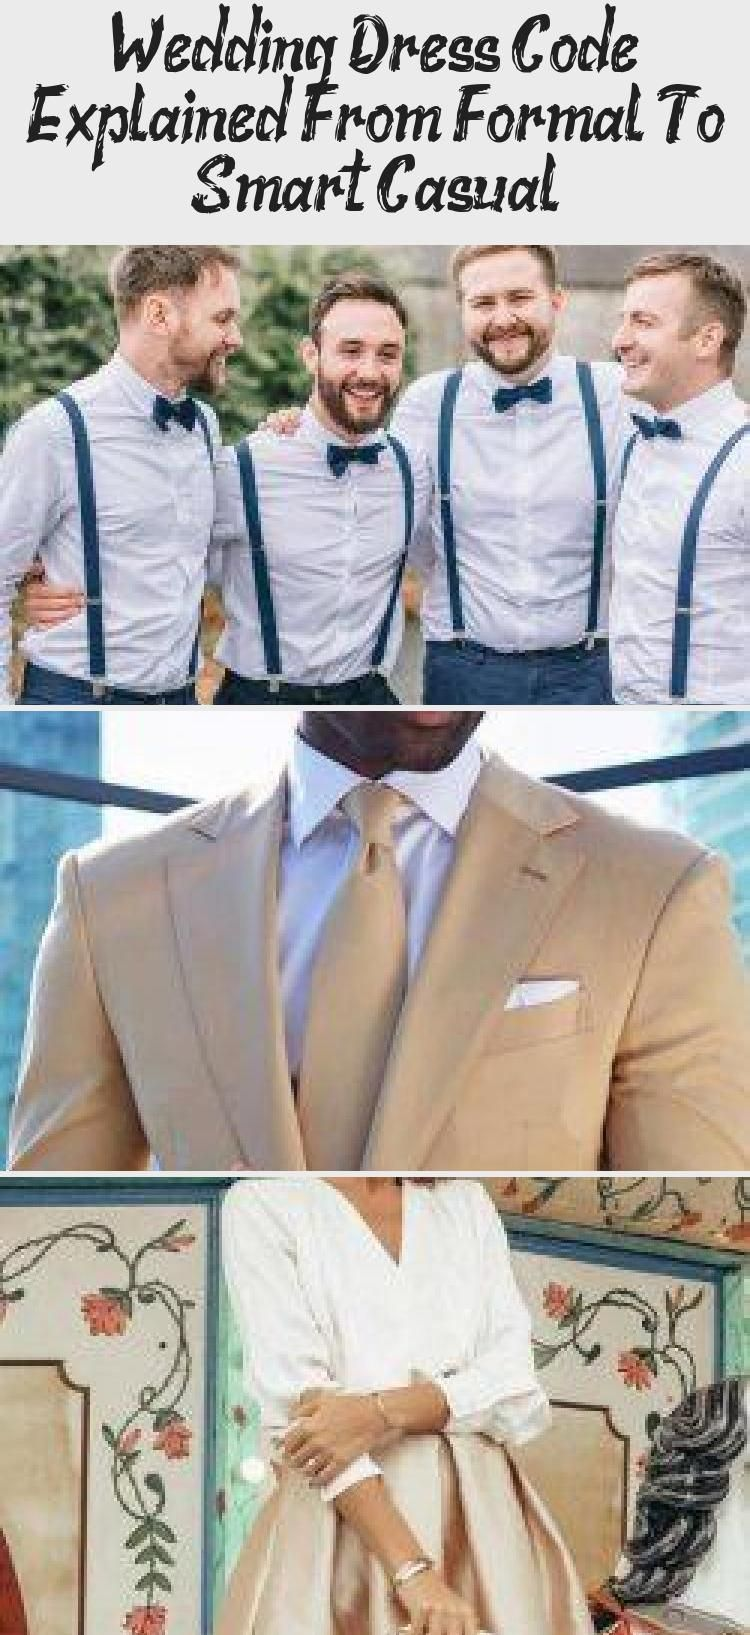 Wedding Dress Code Explained From Formal To Smart Casual Clothing Dress Dress Code Wedding Casual Wedding Attire Smart Casual Dress [ 1635 x 750 Pixel ]